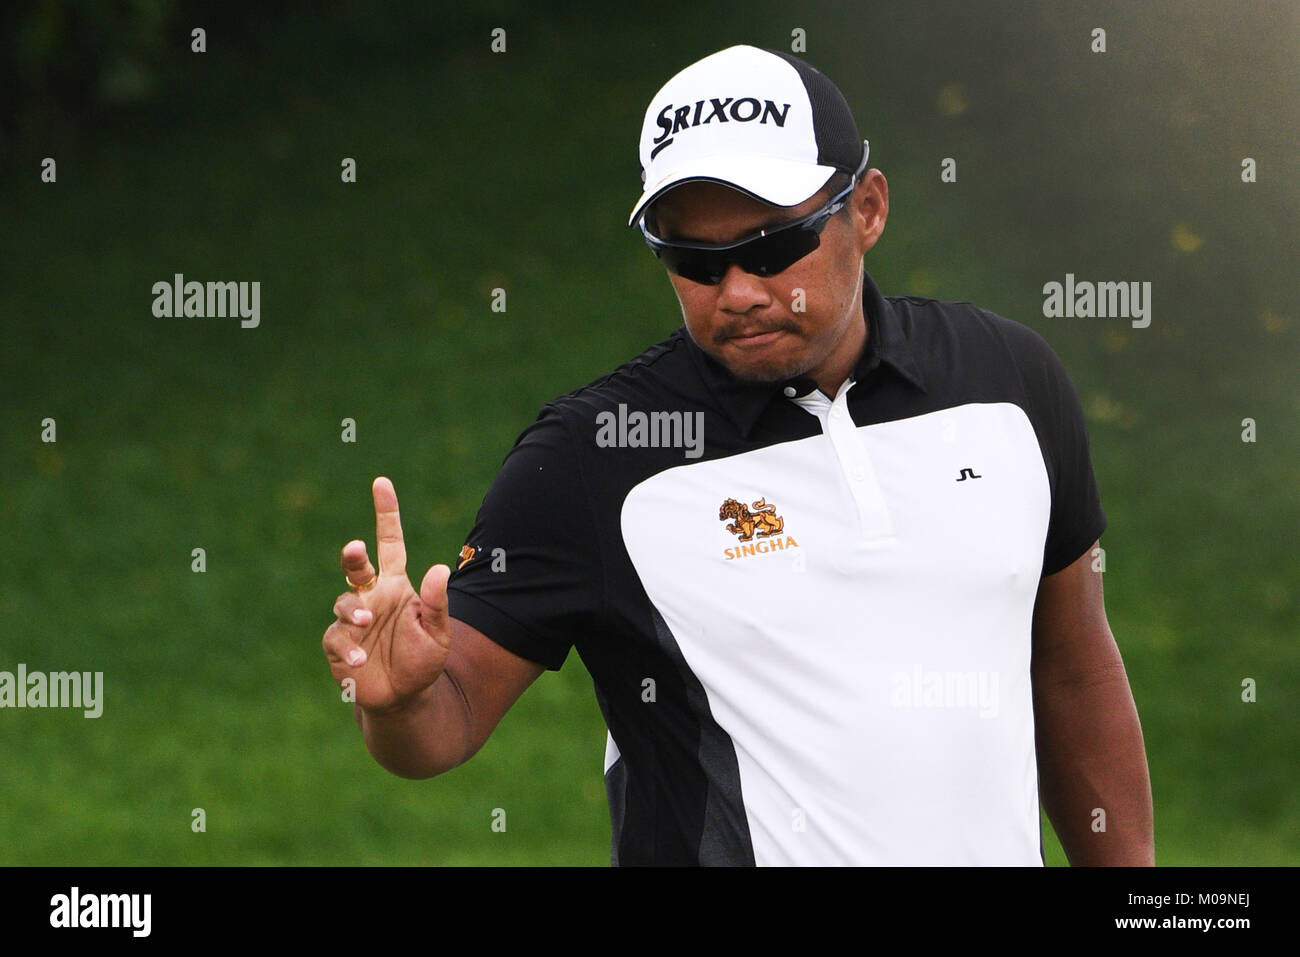 Singapore. 20th Jan, 2018. Thailand's player Chapchai Nirat acknowledges the crowd during the 3rd round of the - Stock Image